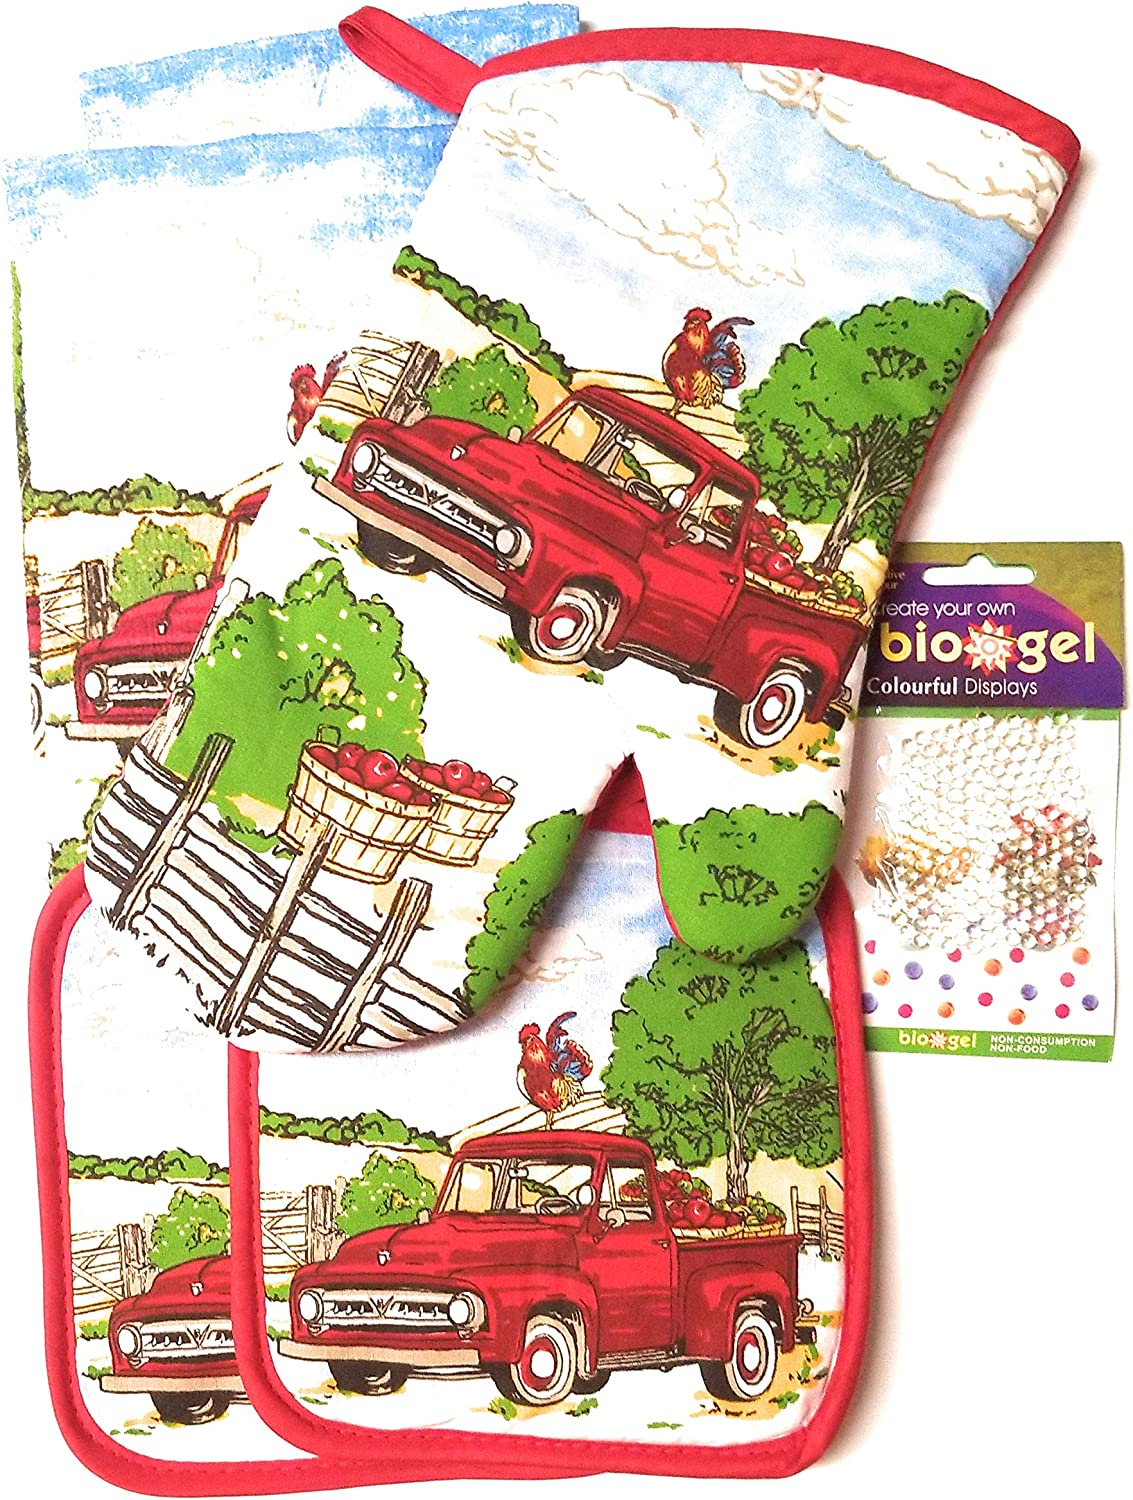 Village Gifts Apple Harvest Themed Kitchen Towel Set 5 pc. (Includes: 1 Oven Mitt, 2 Potholders and 2 Dishtowels).